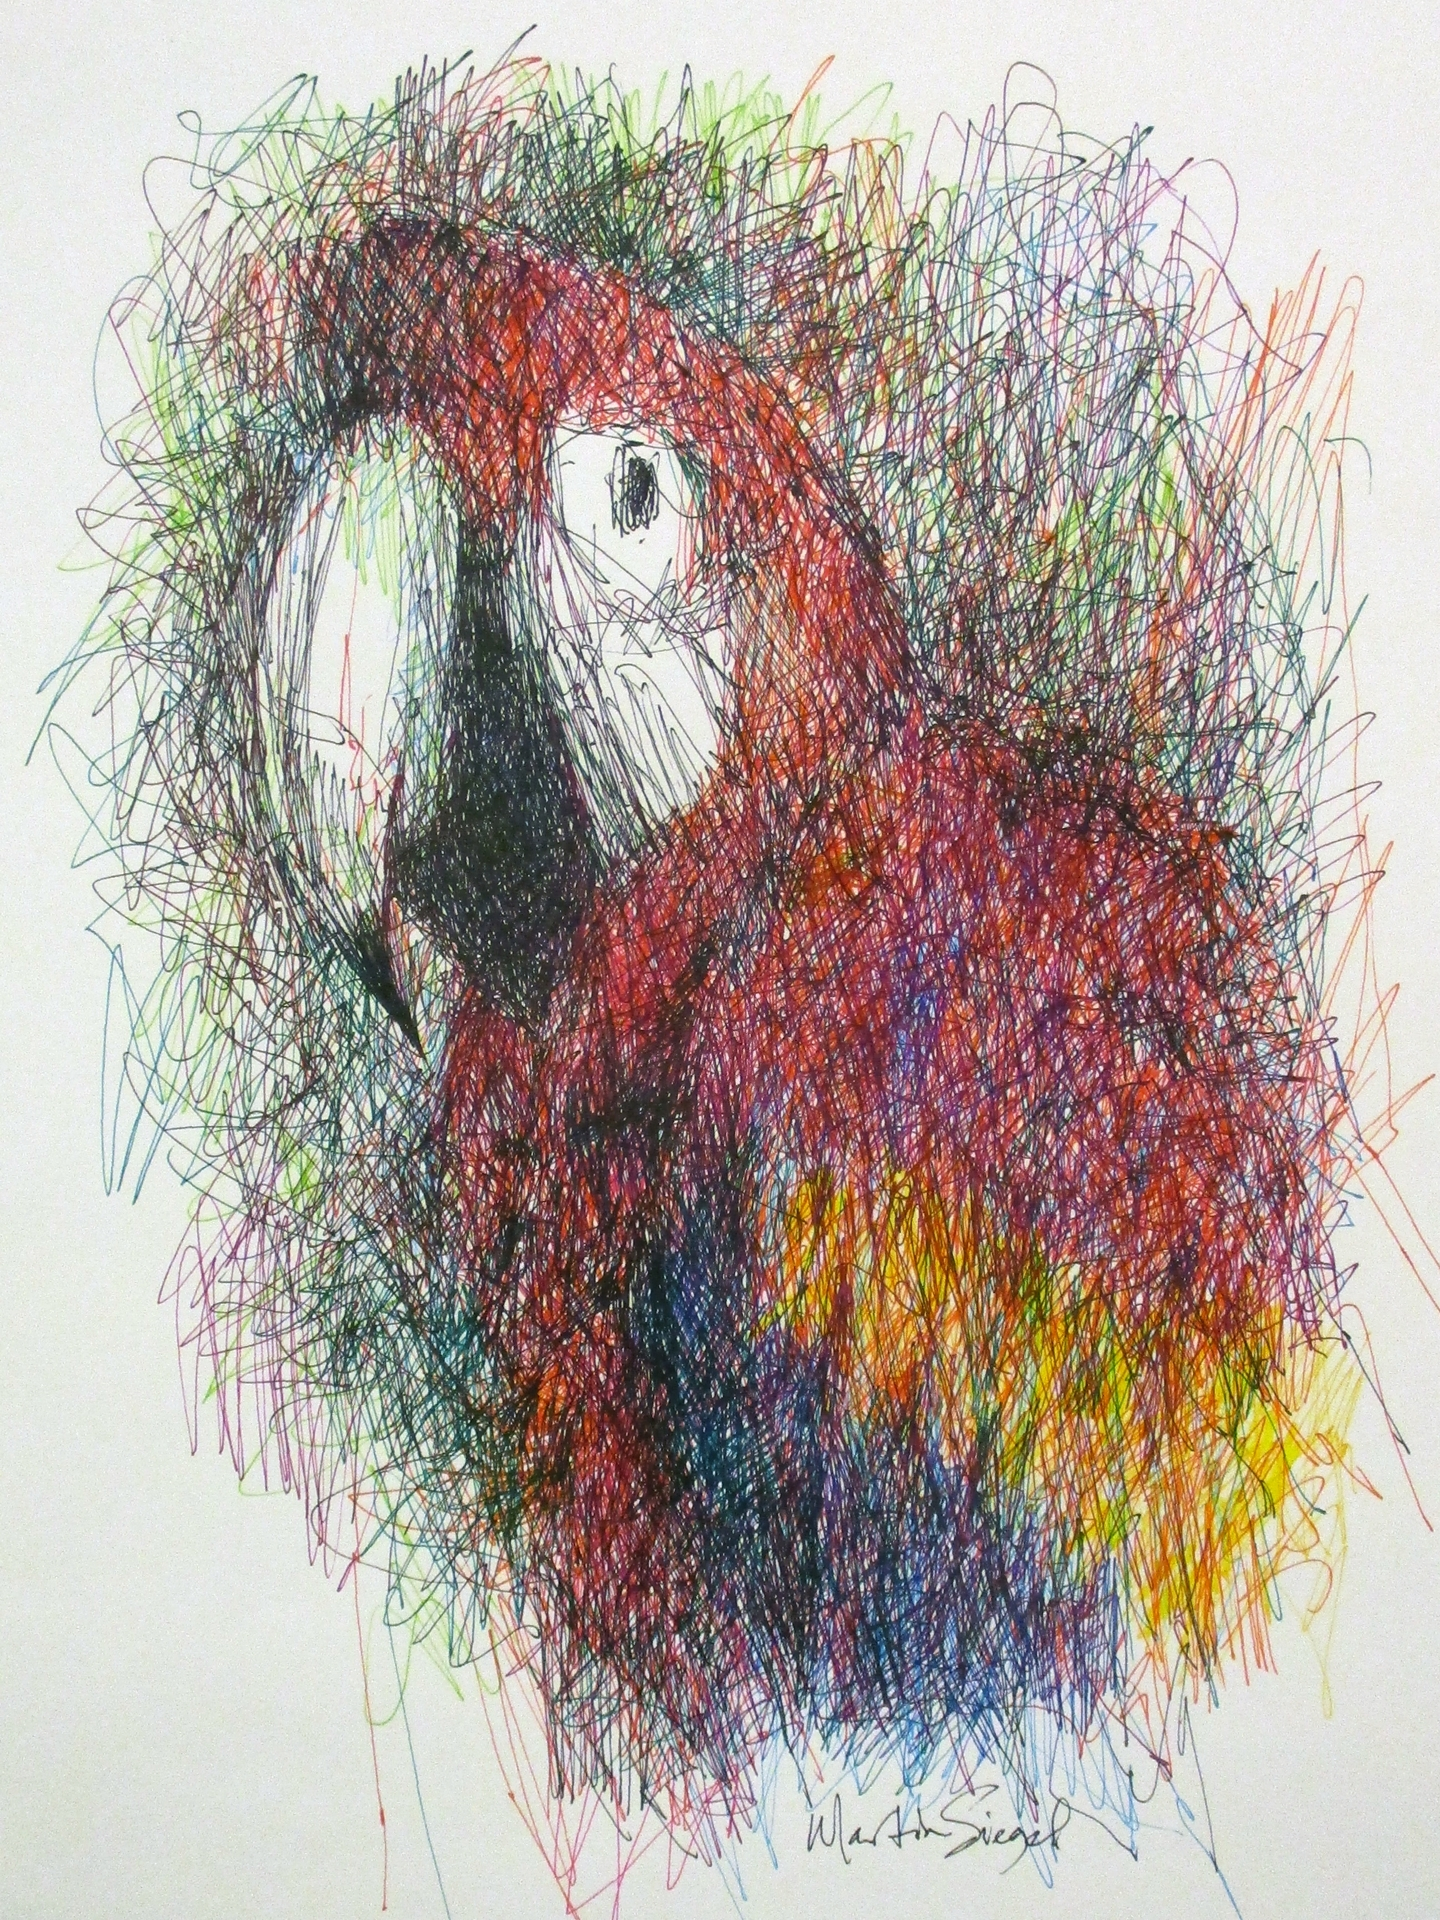 MARTIN SIEGEL  - Silver Lake, OH   Red Macaw   drawing - gel pen, $800